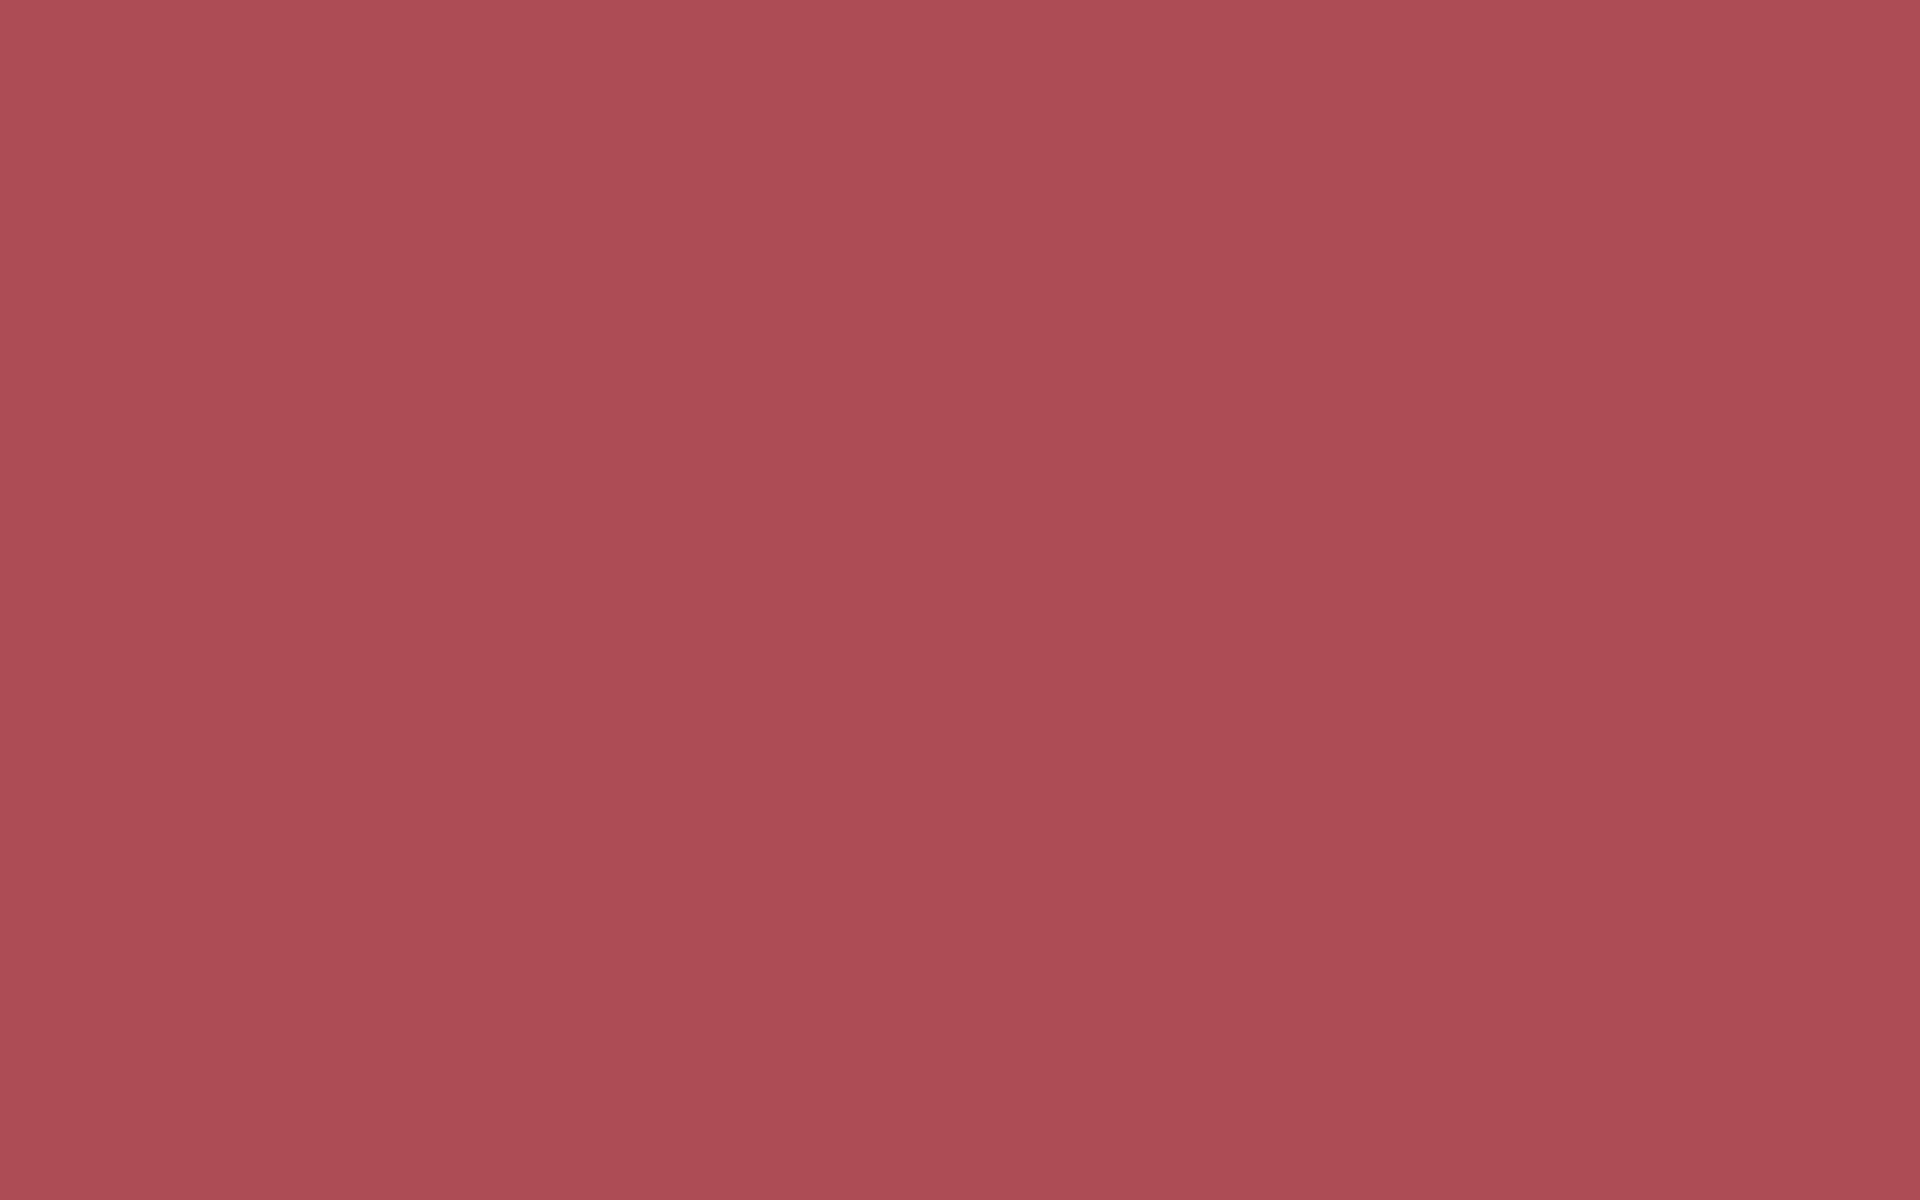 1920x1200 English Red Solid Color Background